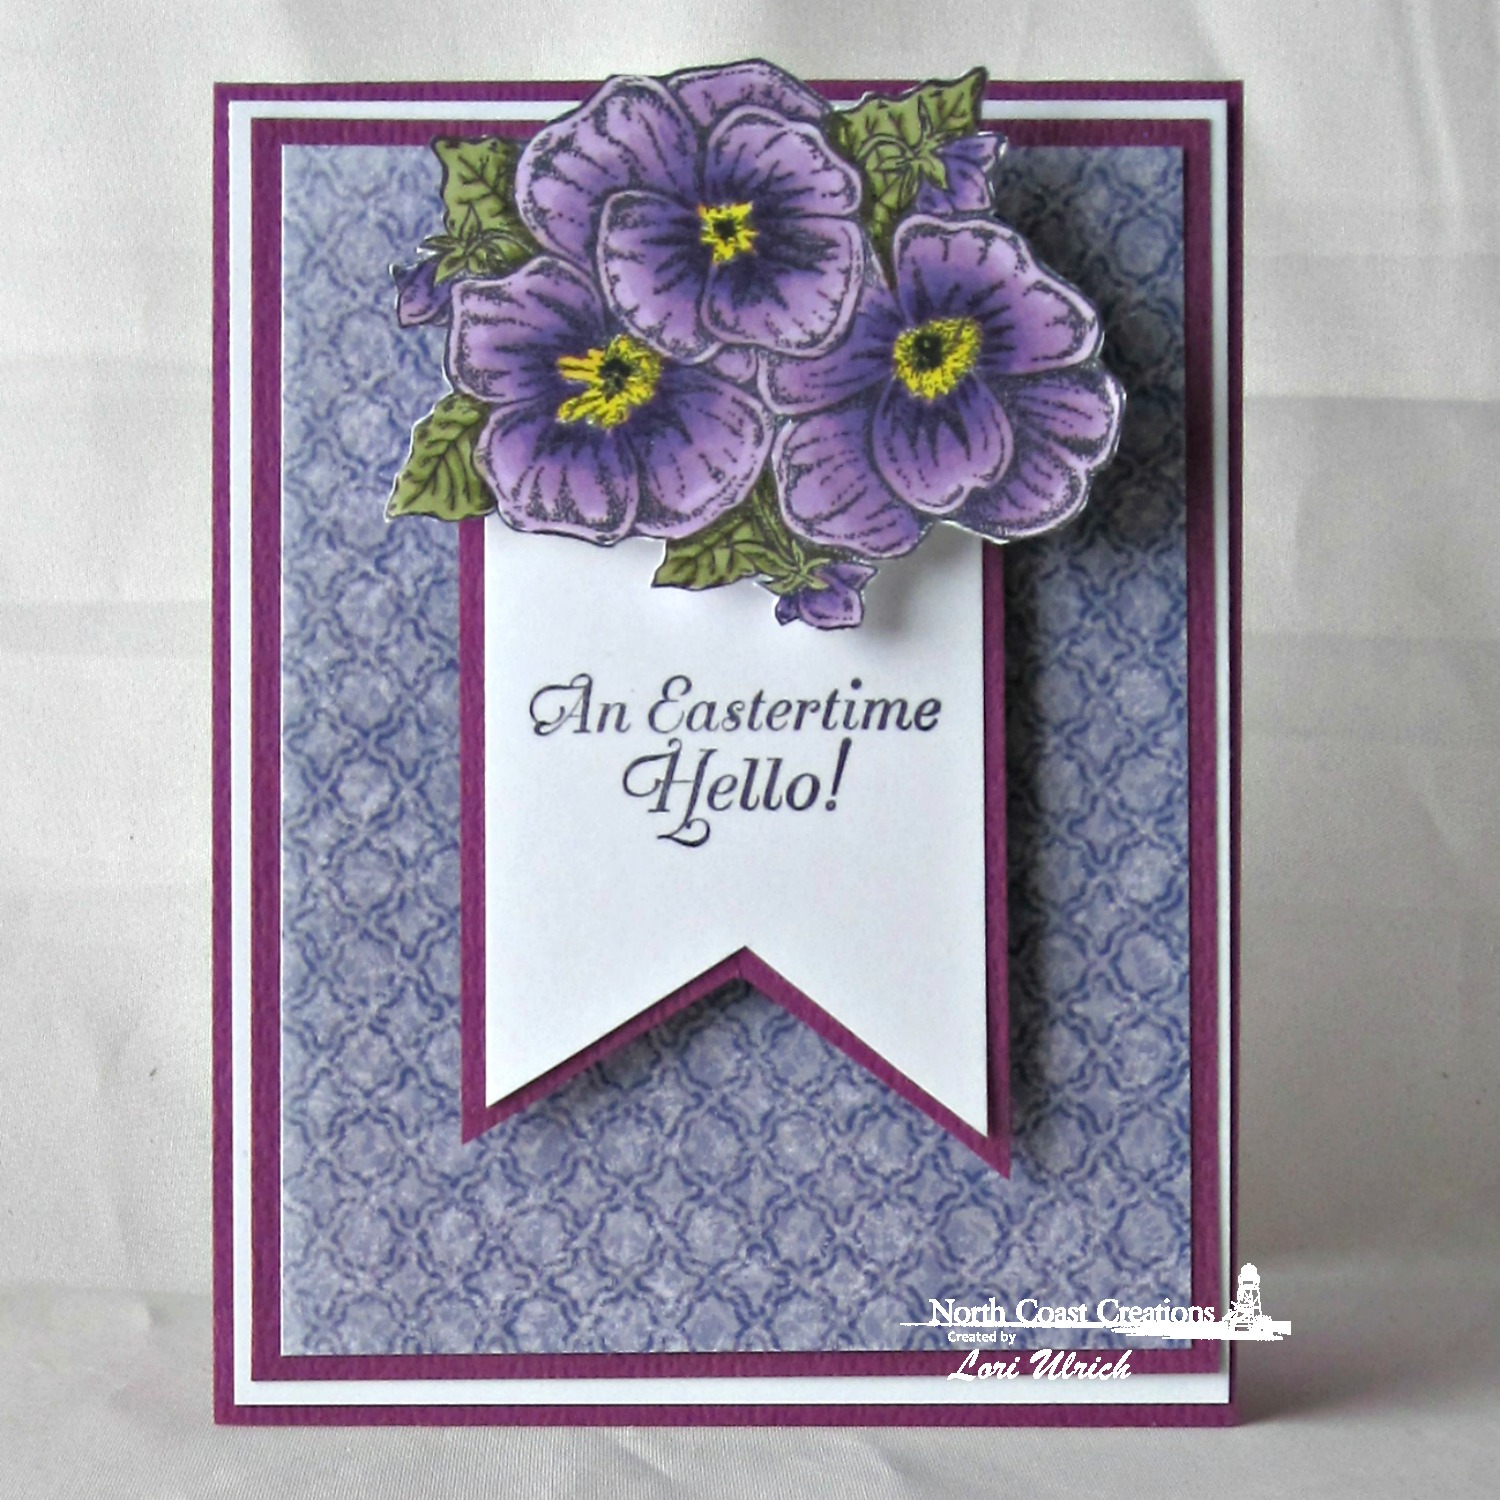 Stamps - North Coast Creations Pansies, ODBD Christian Faith Paper Collection